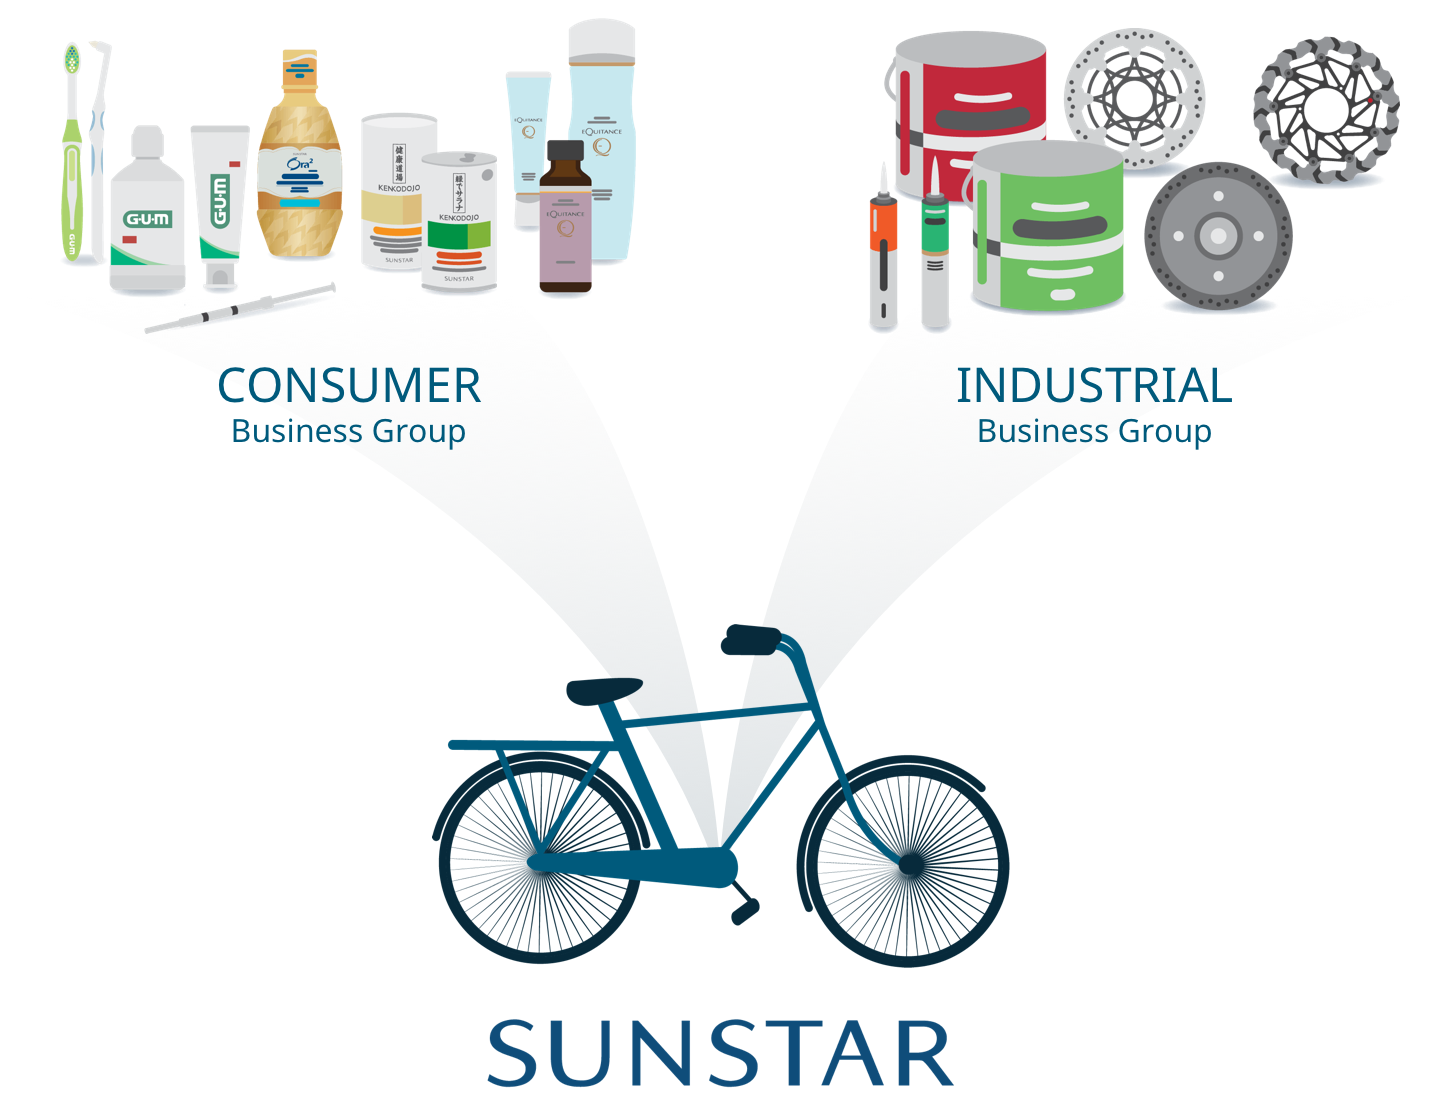 Sunstar's company structure is comprised of Consumer and Industrial businesses